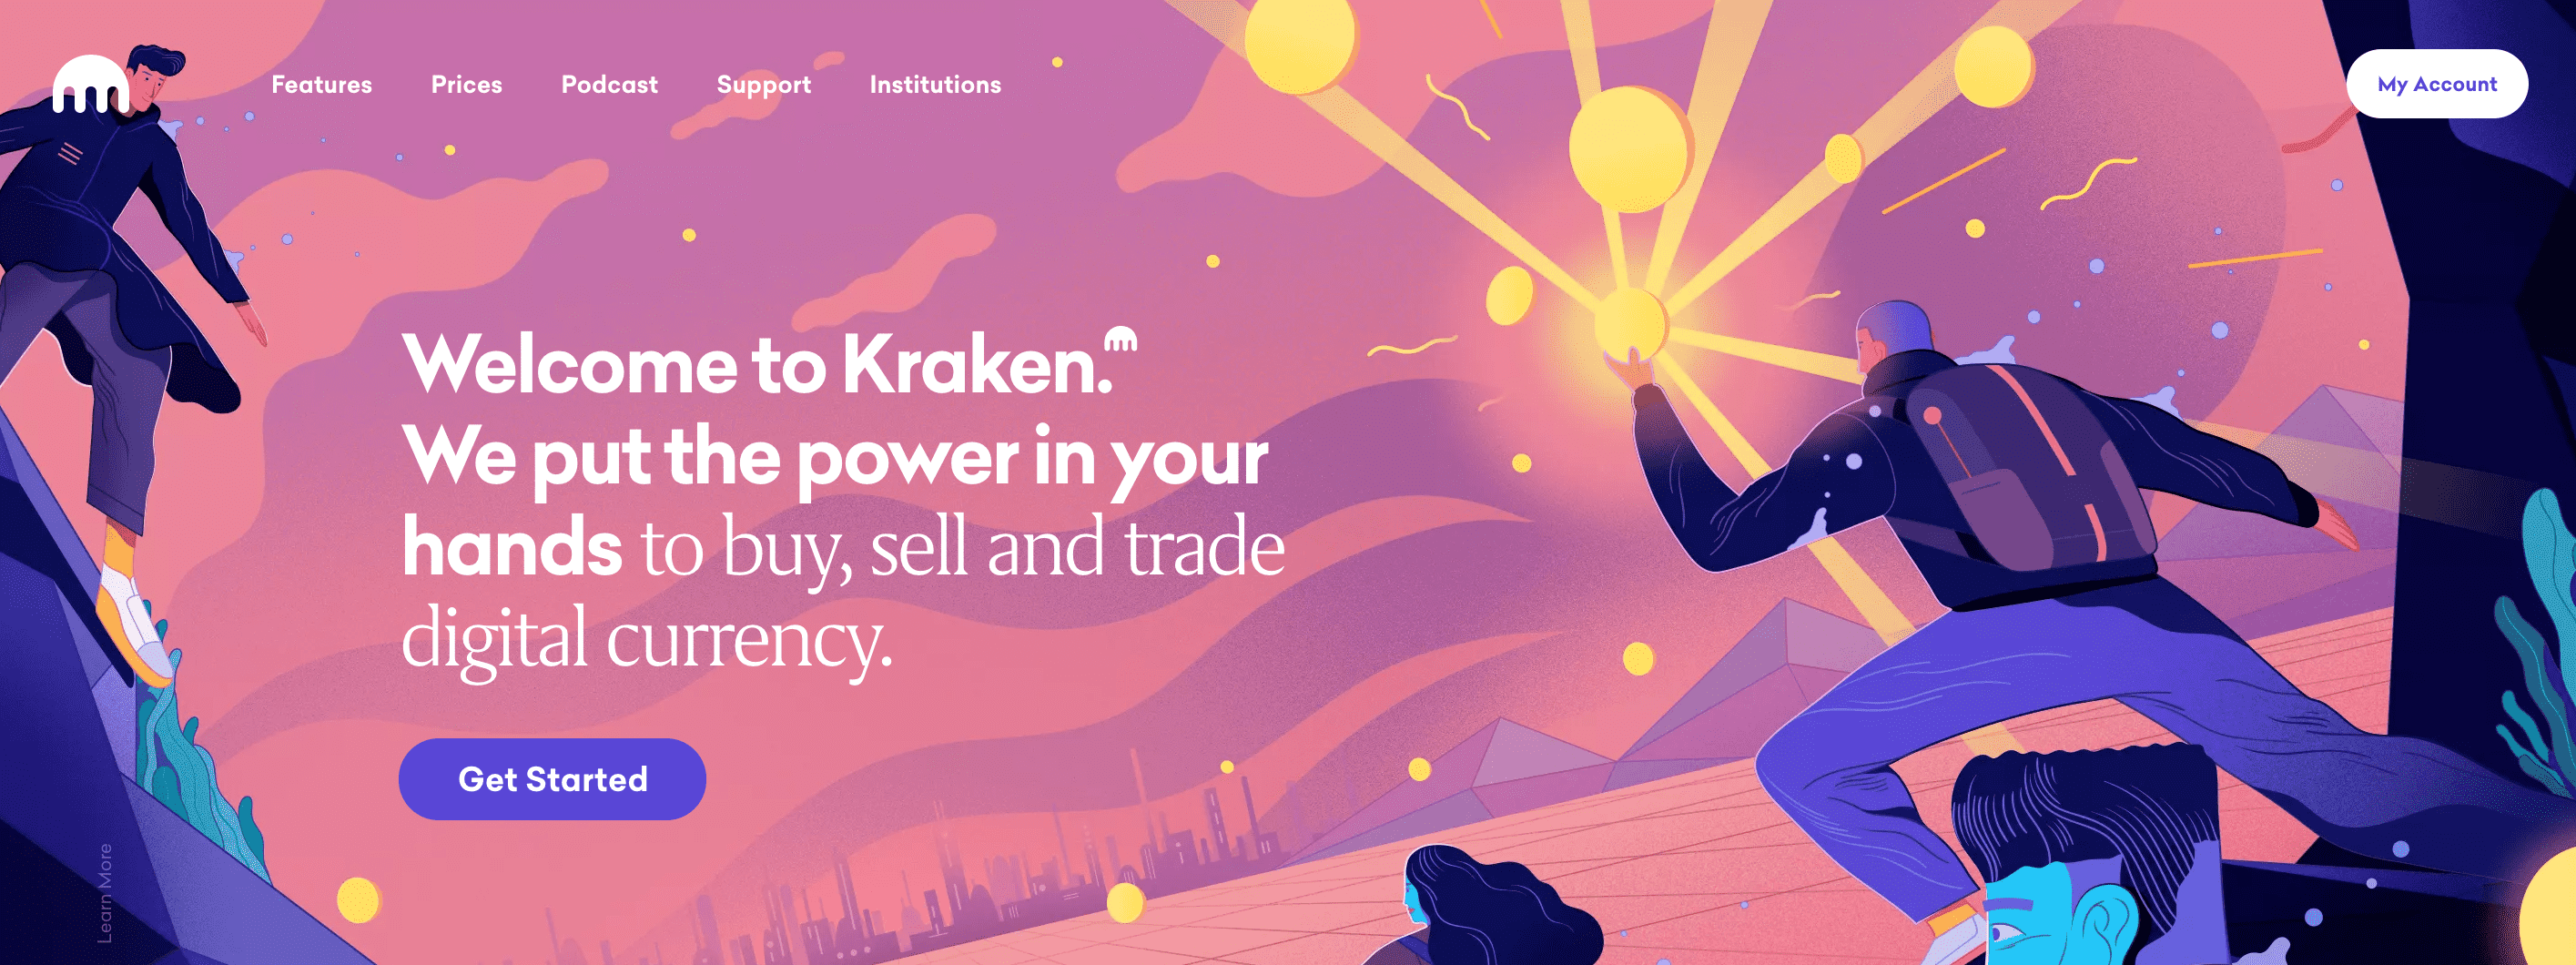 Kraken. We put the power in your hands to buy, sell and trade digital currency.